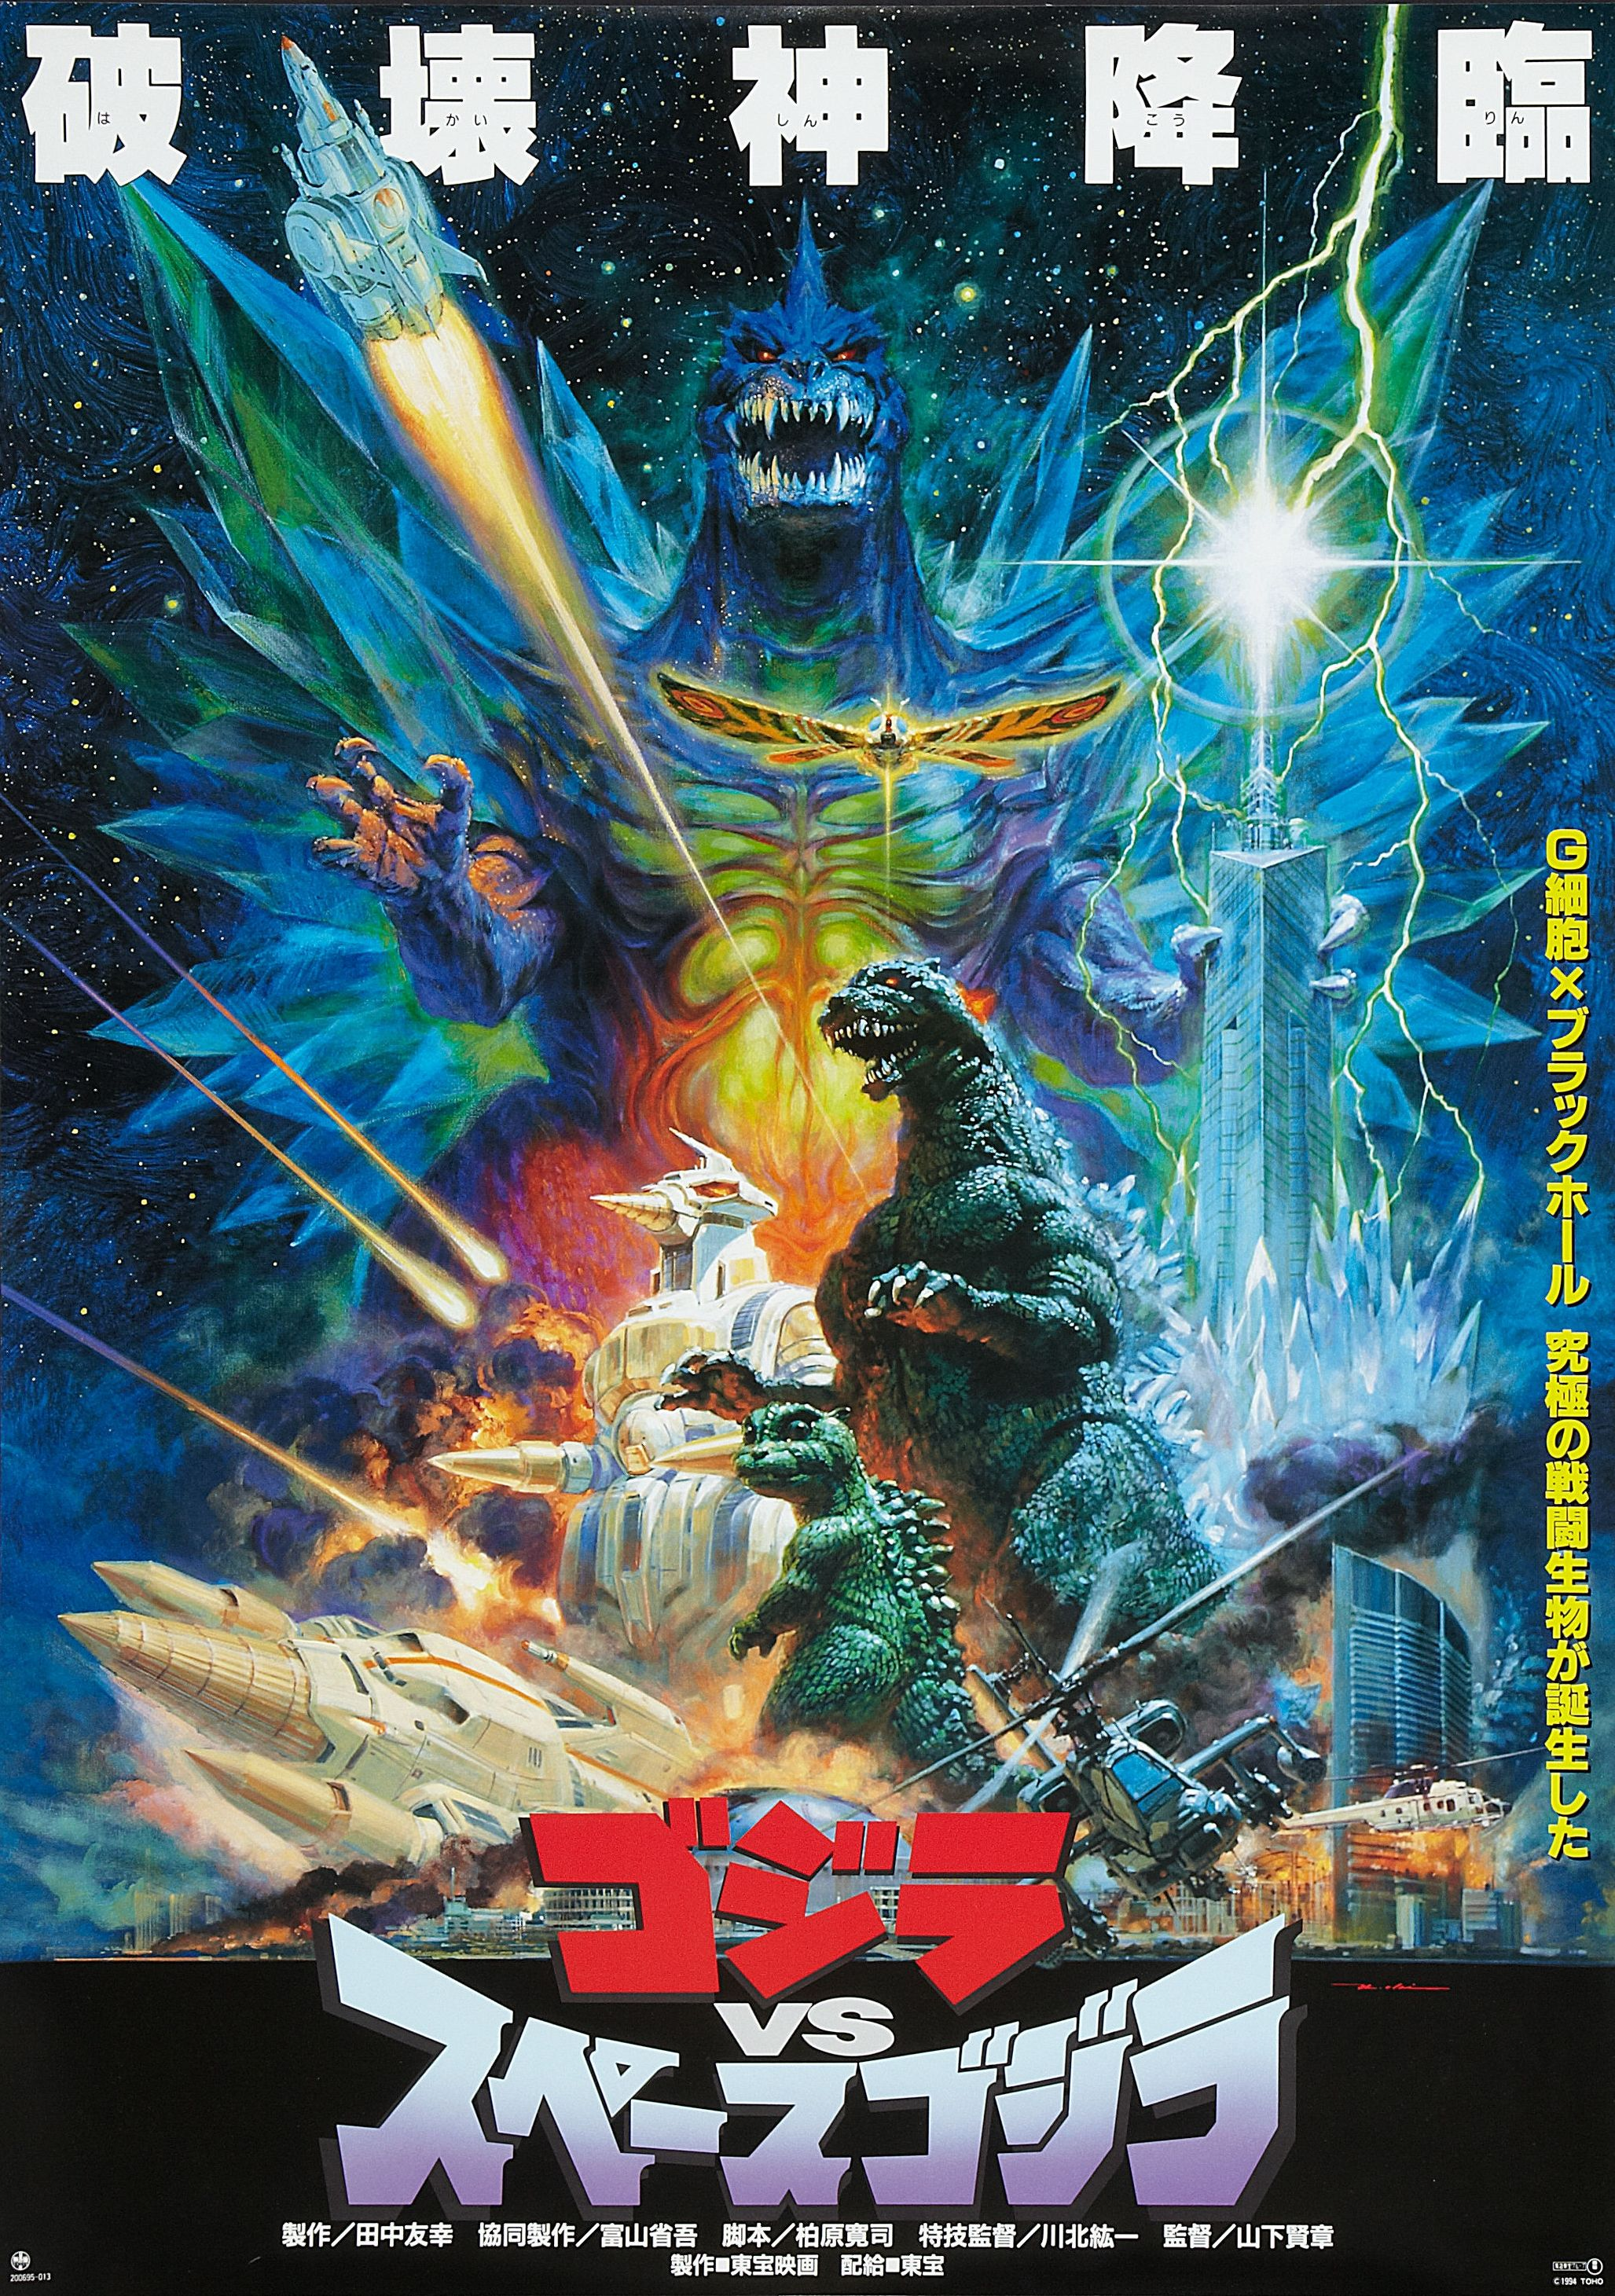 Godzilla vs spacegodzilla 1994 skreeonk for Buy art posters online